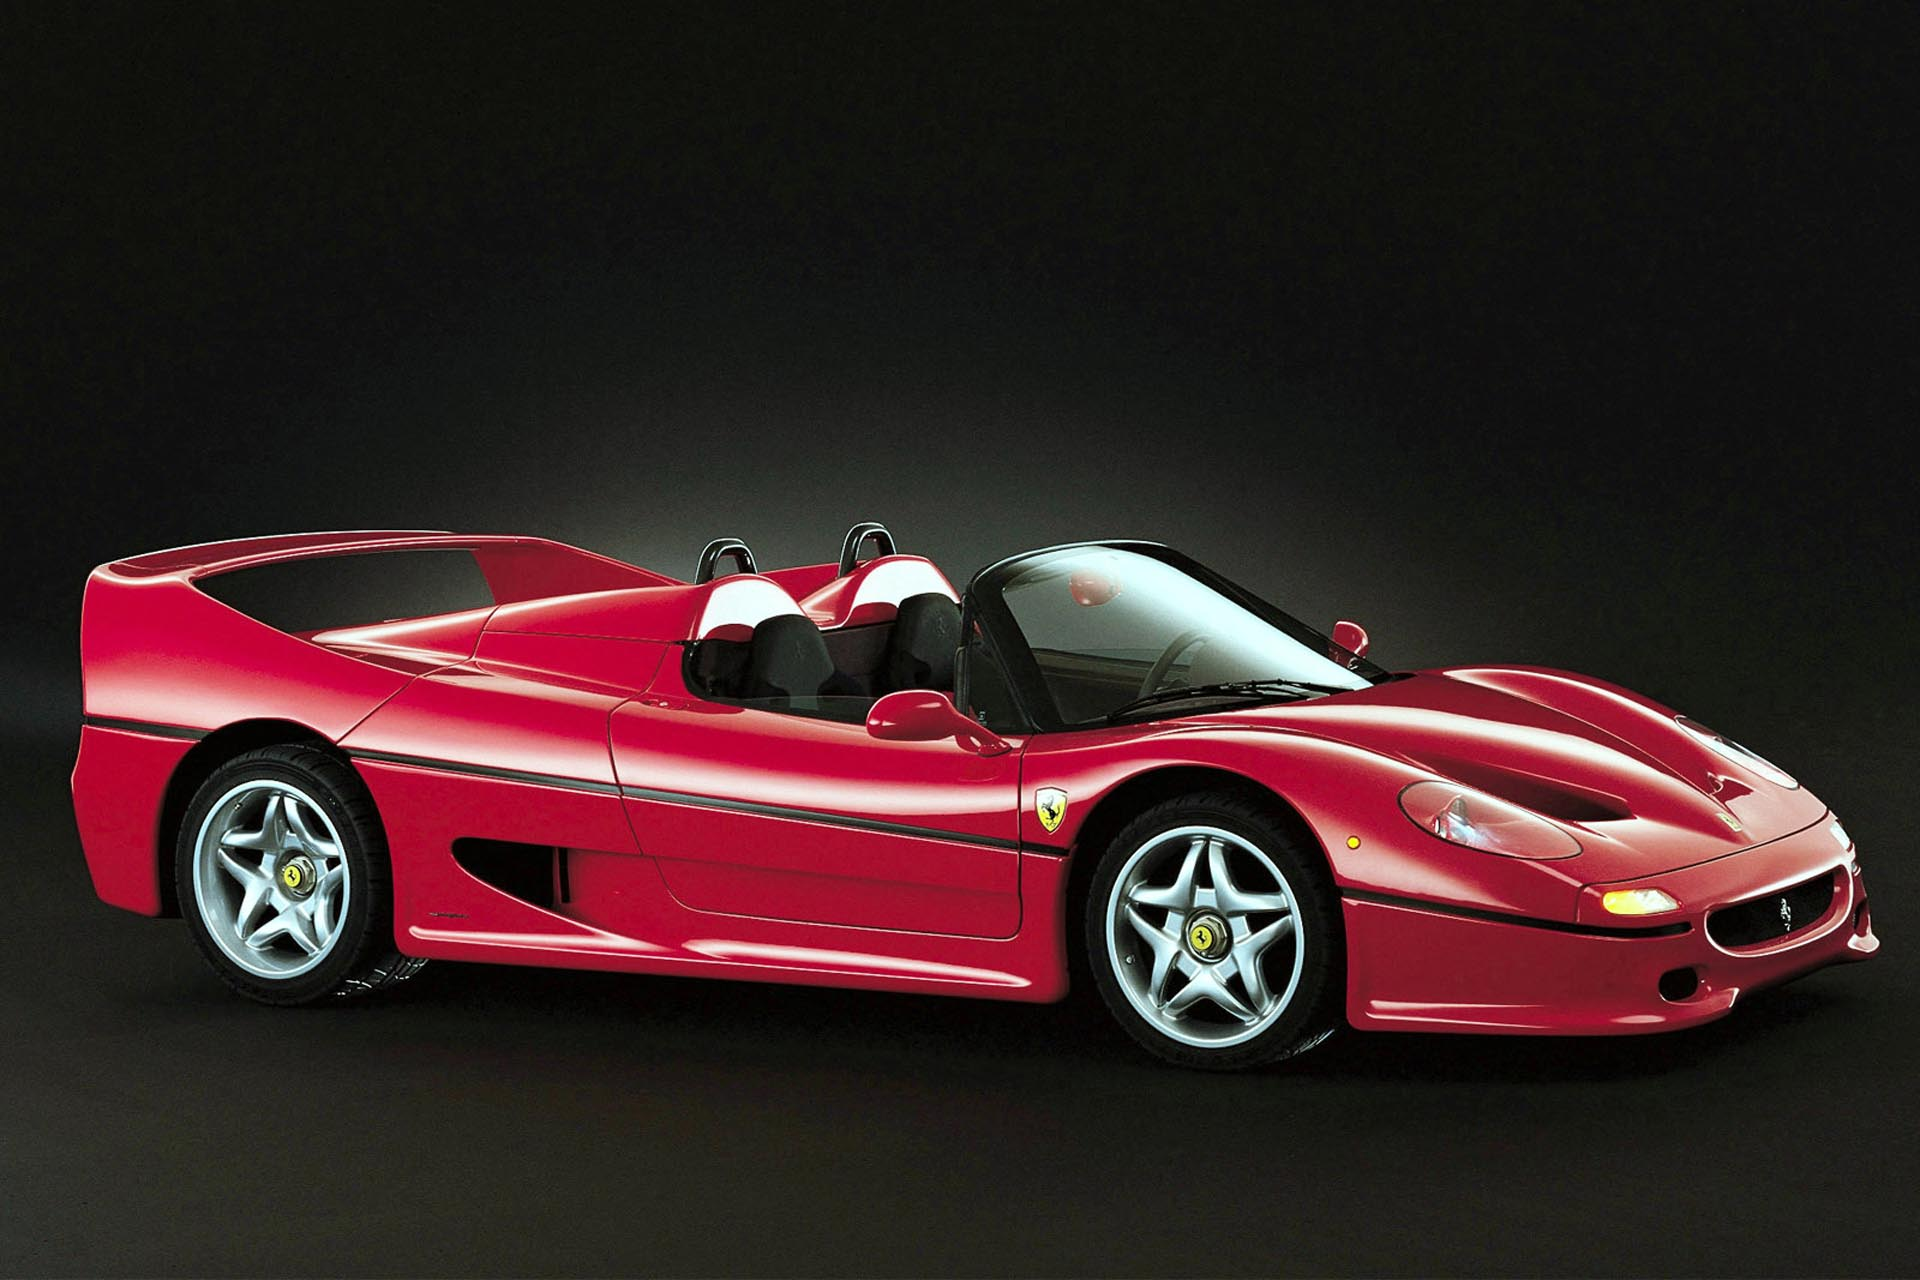 If modern supercars employ all sorts of electronic trickery to keep unskilled drivers from stuffing it into a ditch and are filled with sumptuous luxury fittings, the F40 is the exact opposite of that ethos. It is the anti-Veyron, a no-carpets Kevlar confection with exposed seams and way too much power.